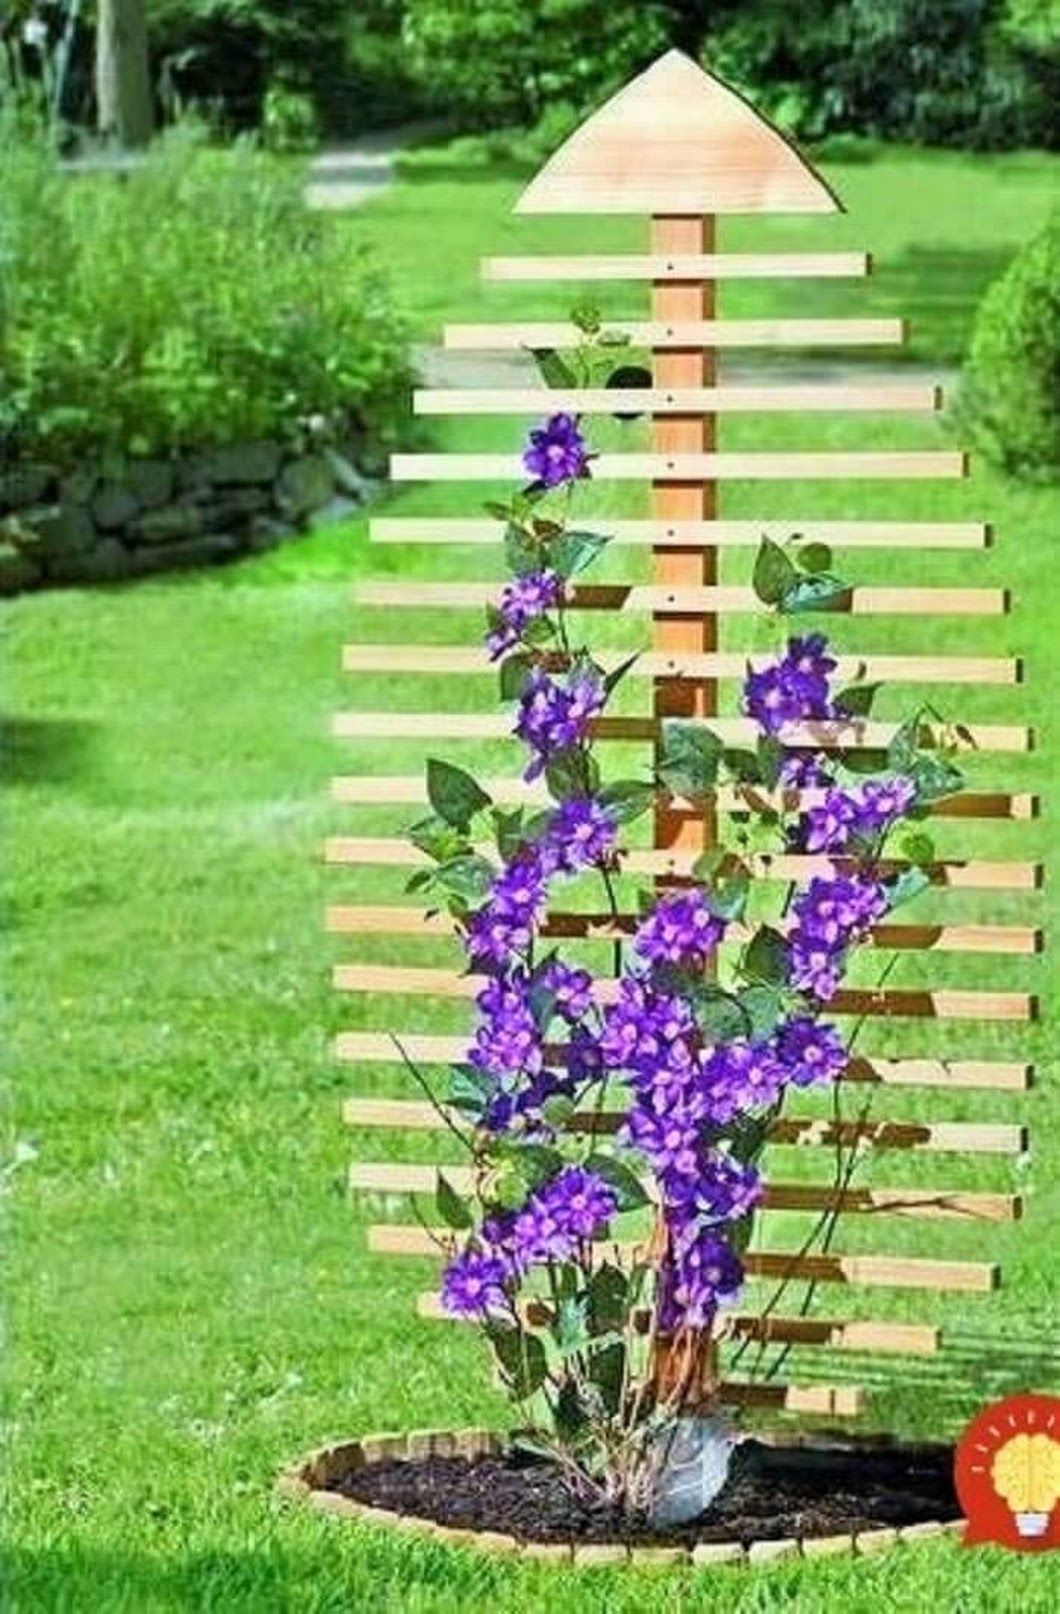 French tuteur trellis woodworking projects amp plans - 15 Fascinating Decoration Ideas For Your Home Garden